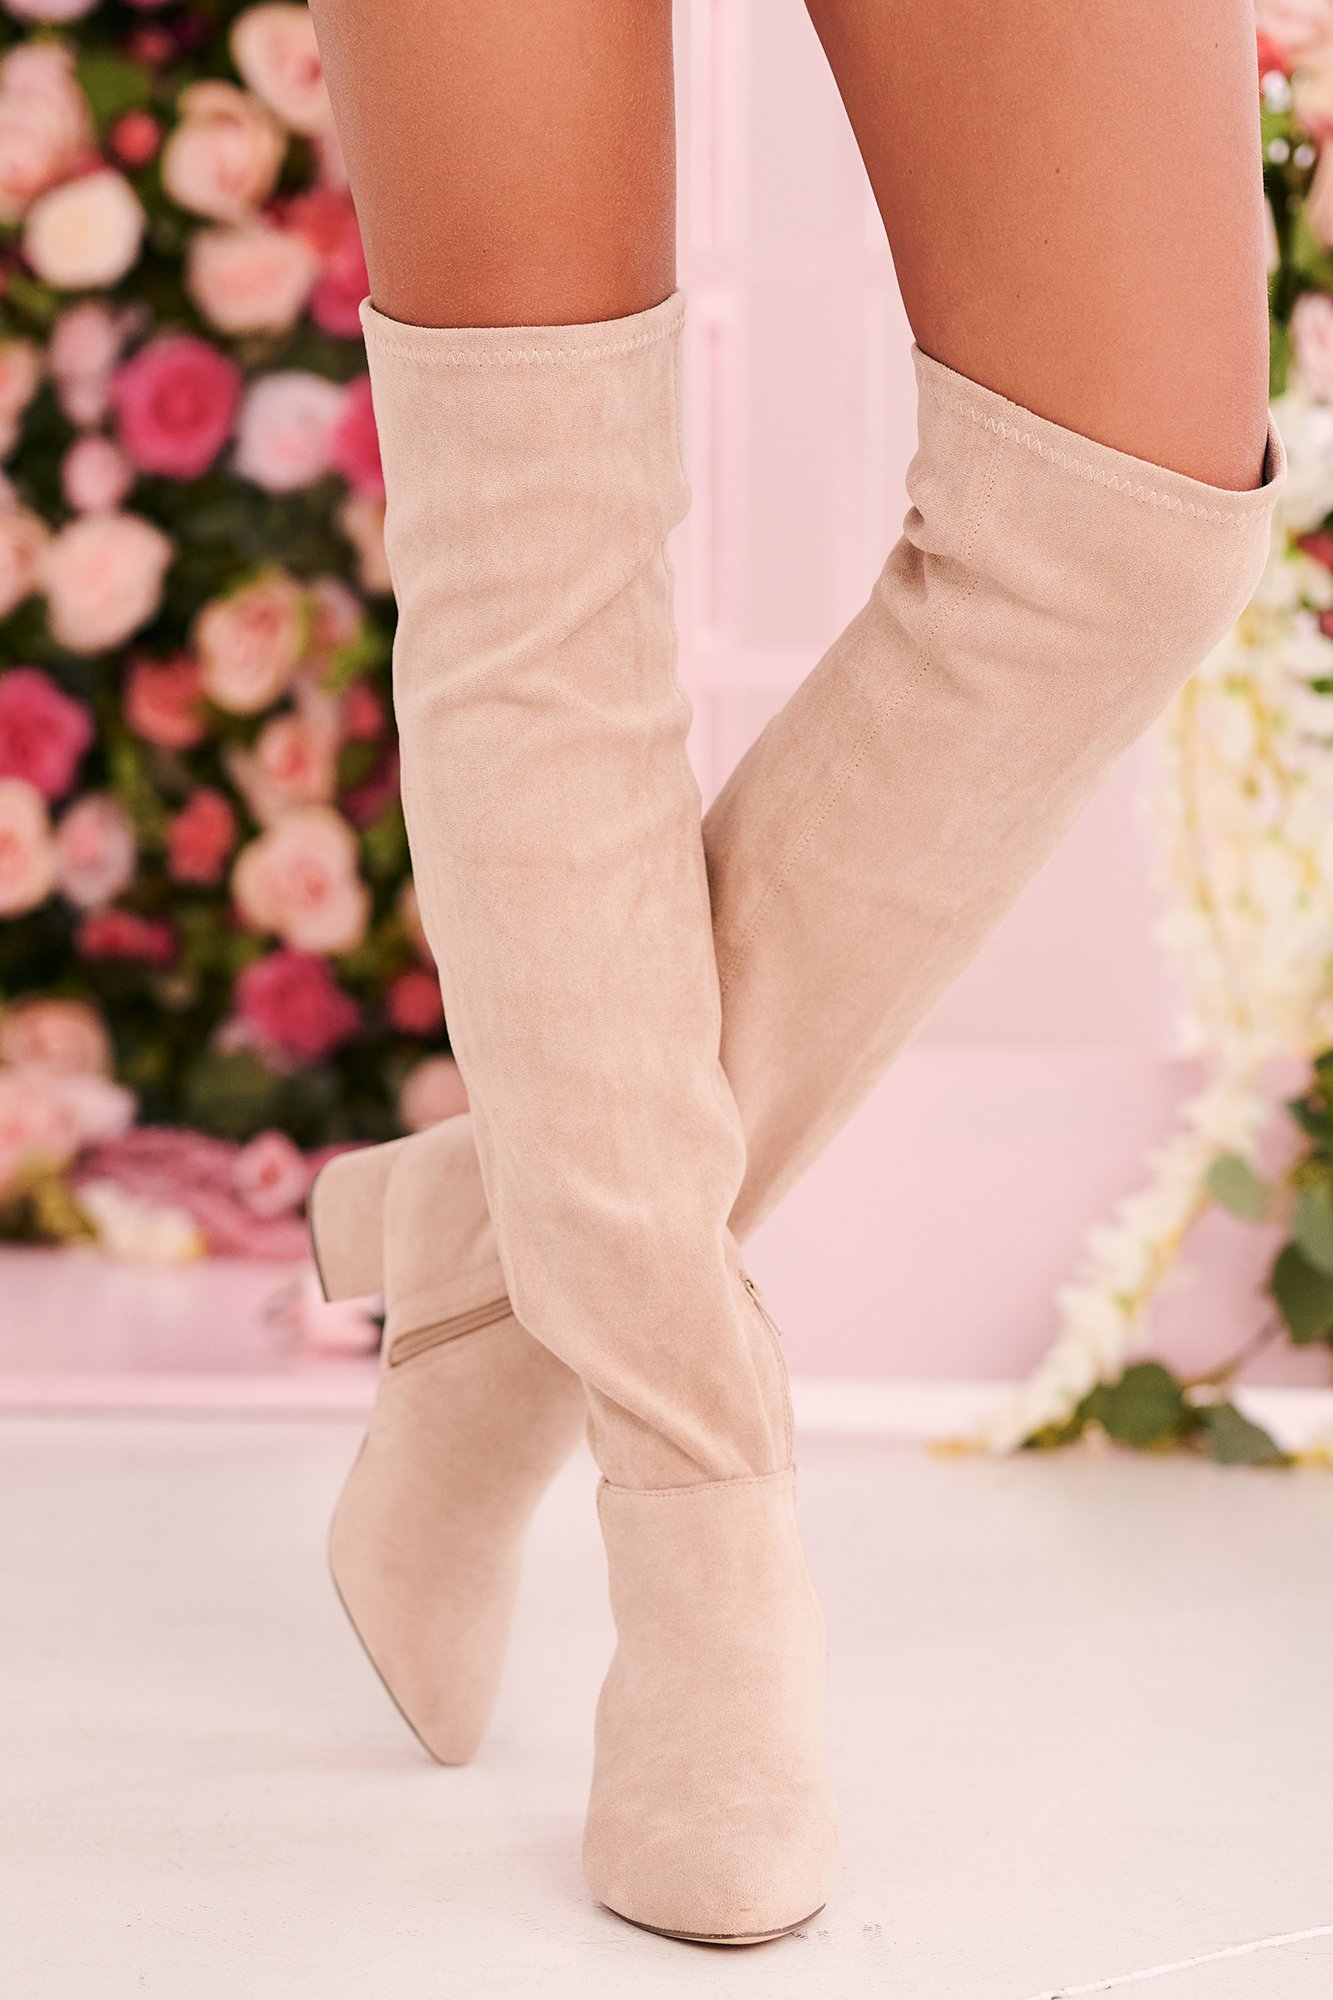 Image of Missed Your Chance Thigh High Boots (Nude Suede)